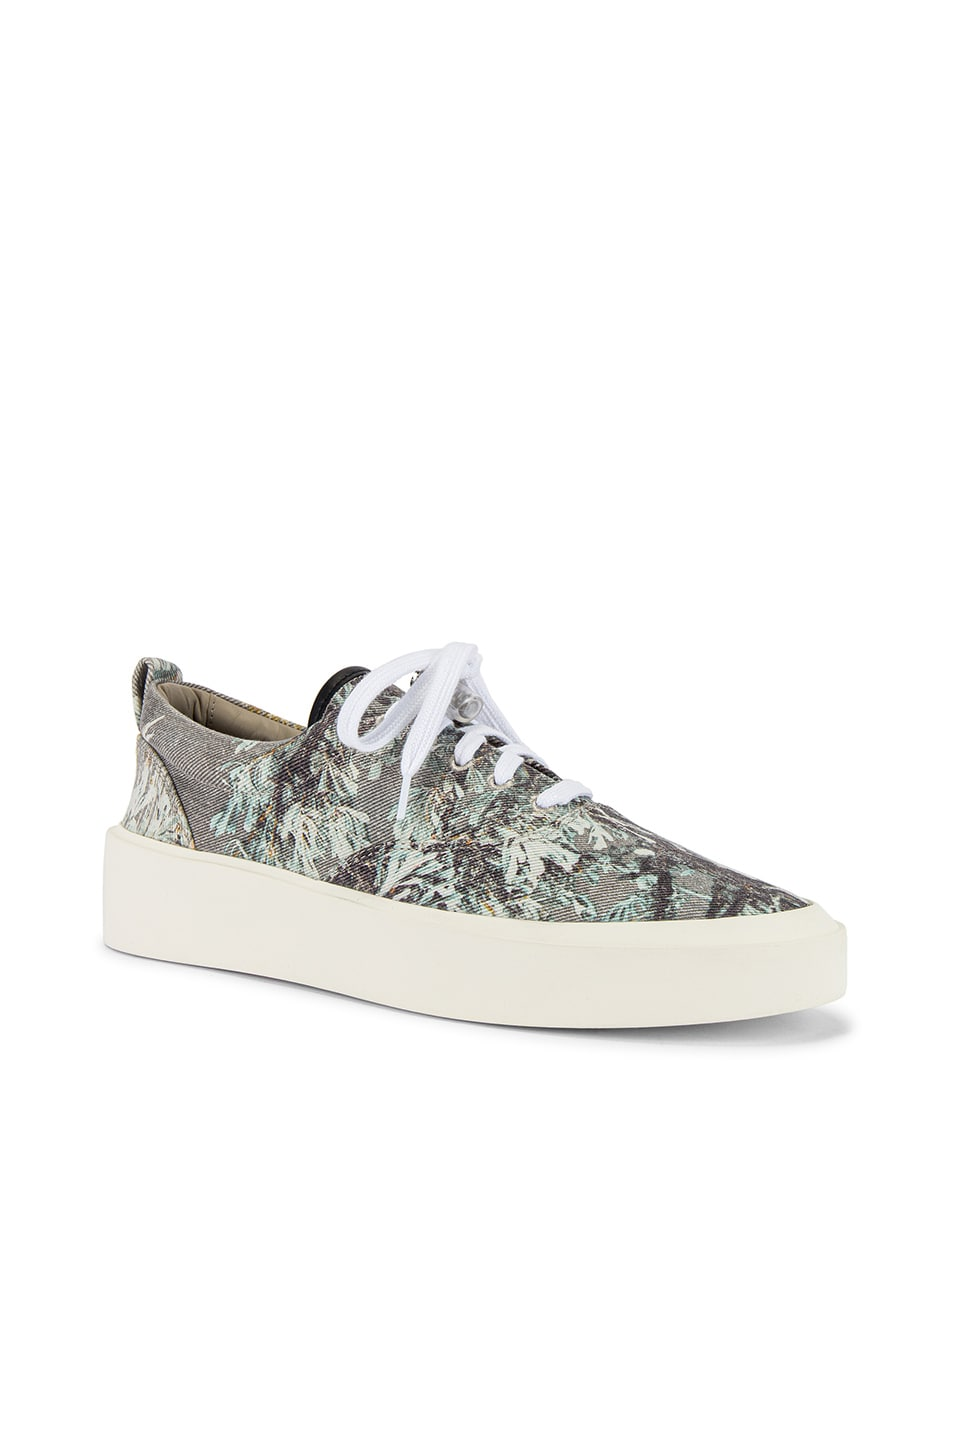 Image 1 of Fear of God 101 Lace Up Sneaker in Prairie Ghost Camo